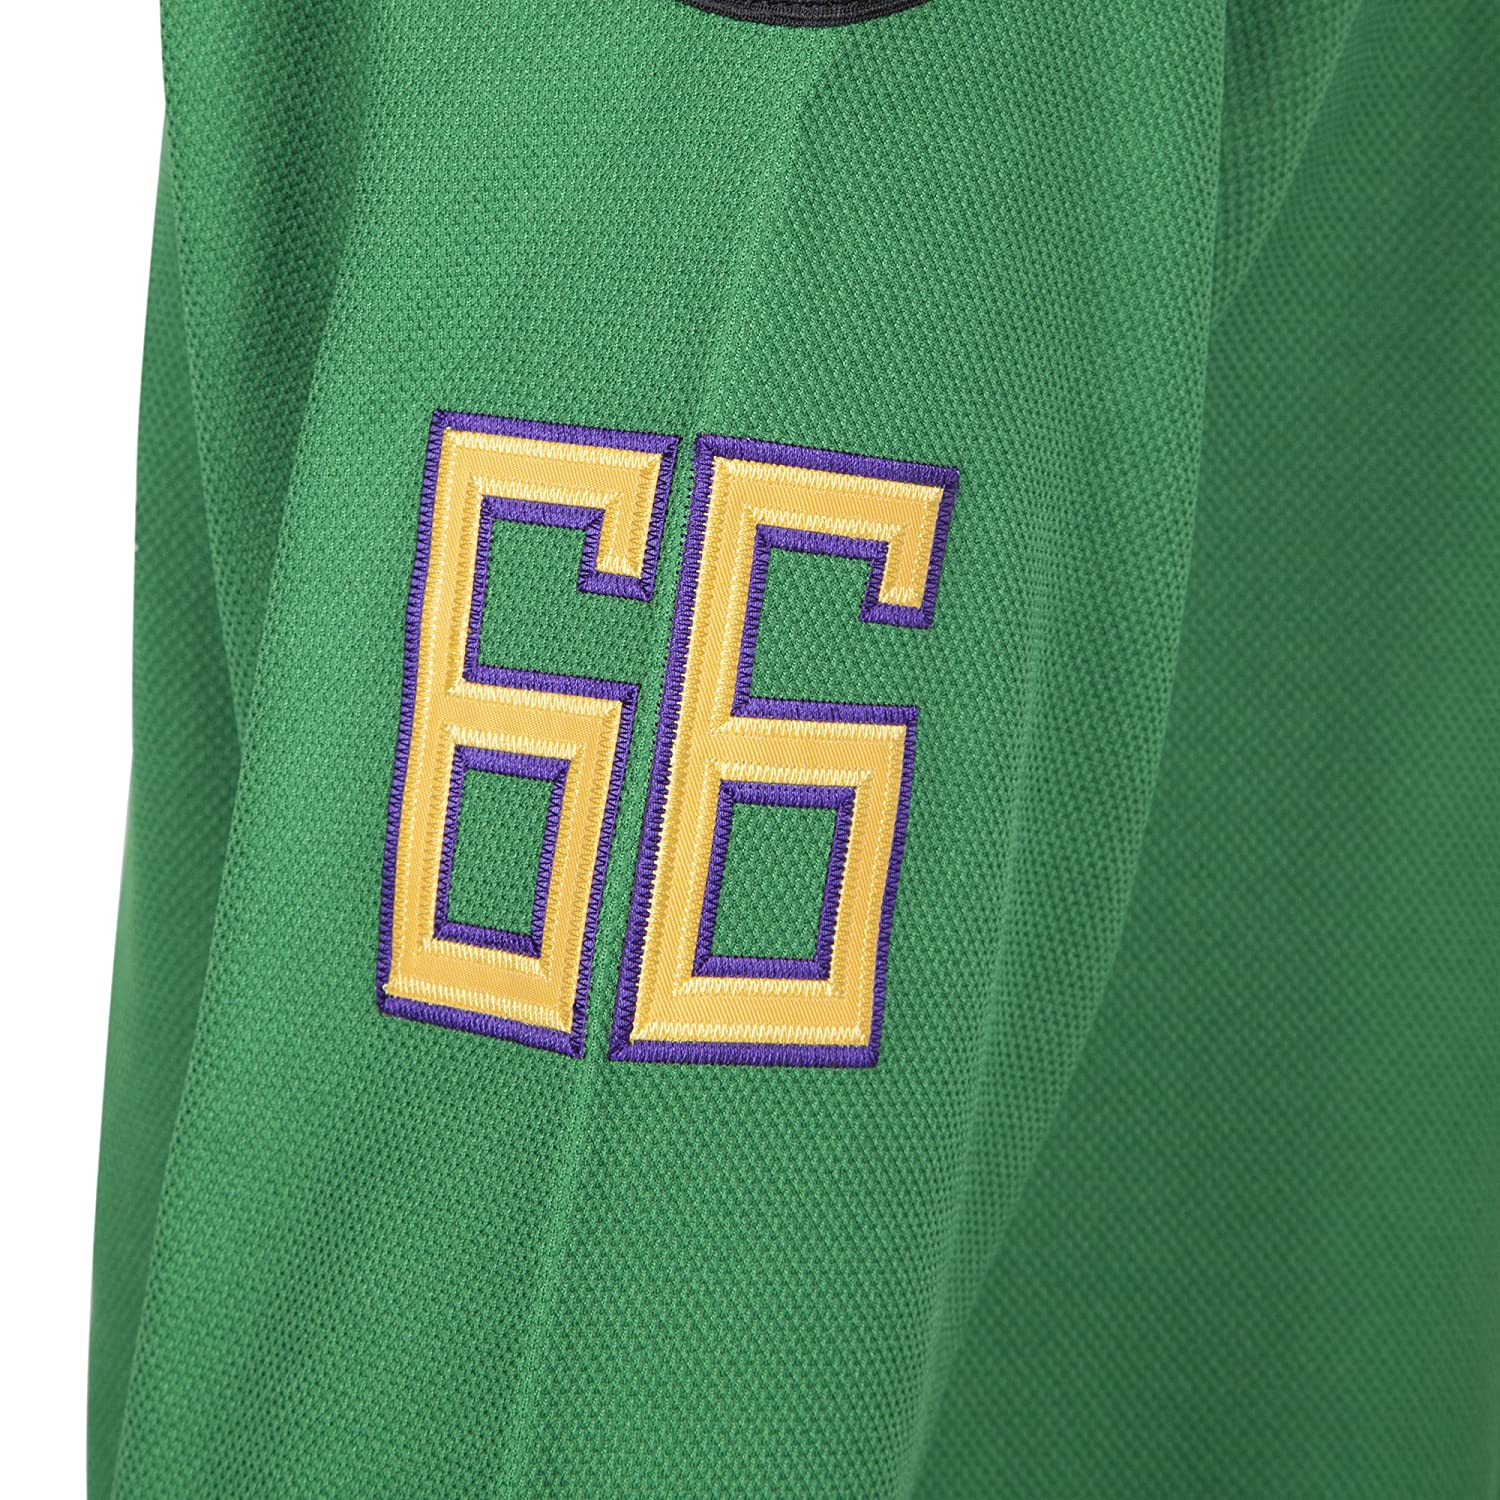 90S Hip Hop Clothing for Party MOLPE Portman 21 Ducks Jersey S-XXXL Green Stitched Letters and Numbers